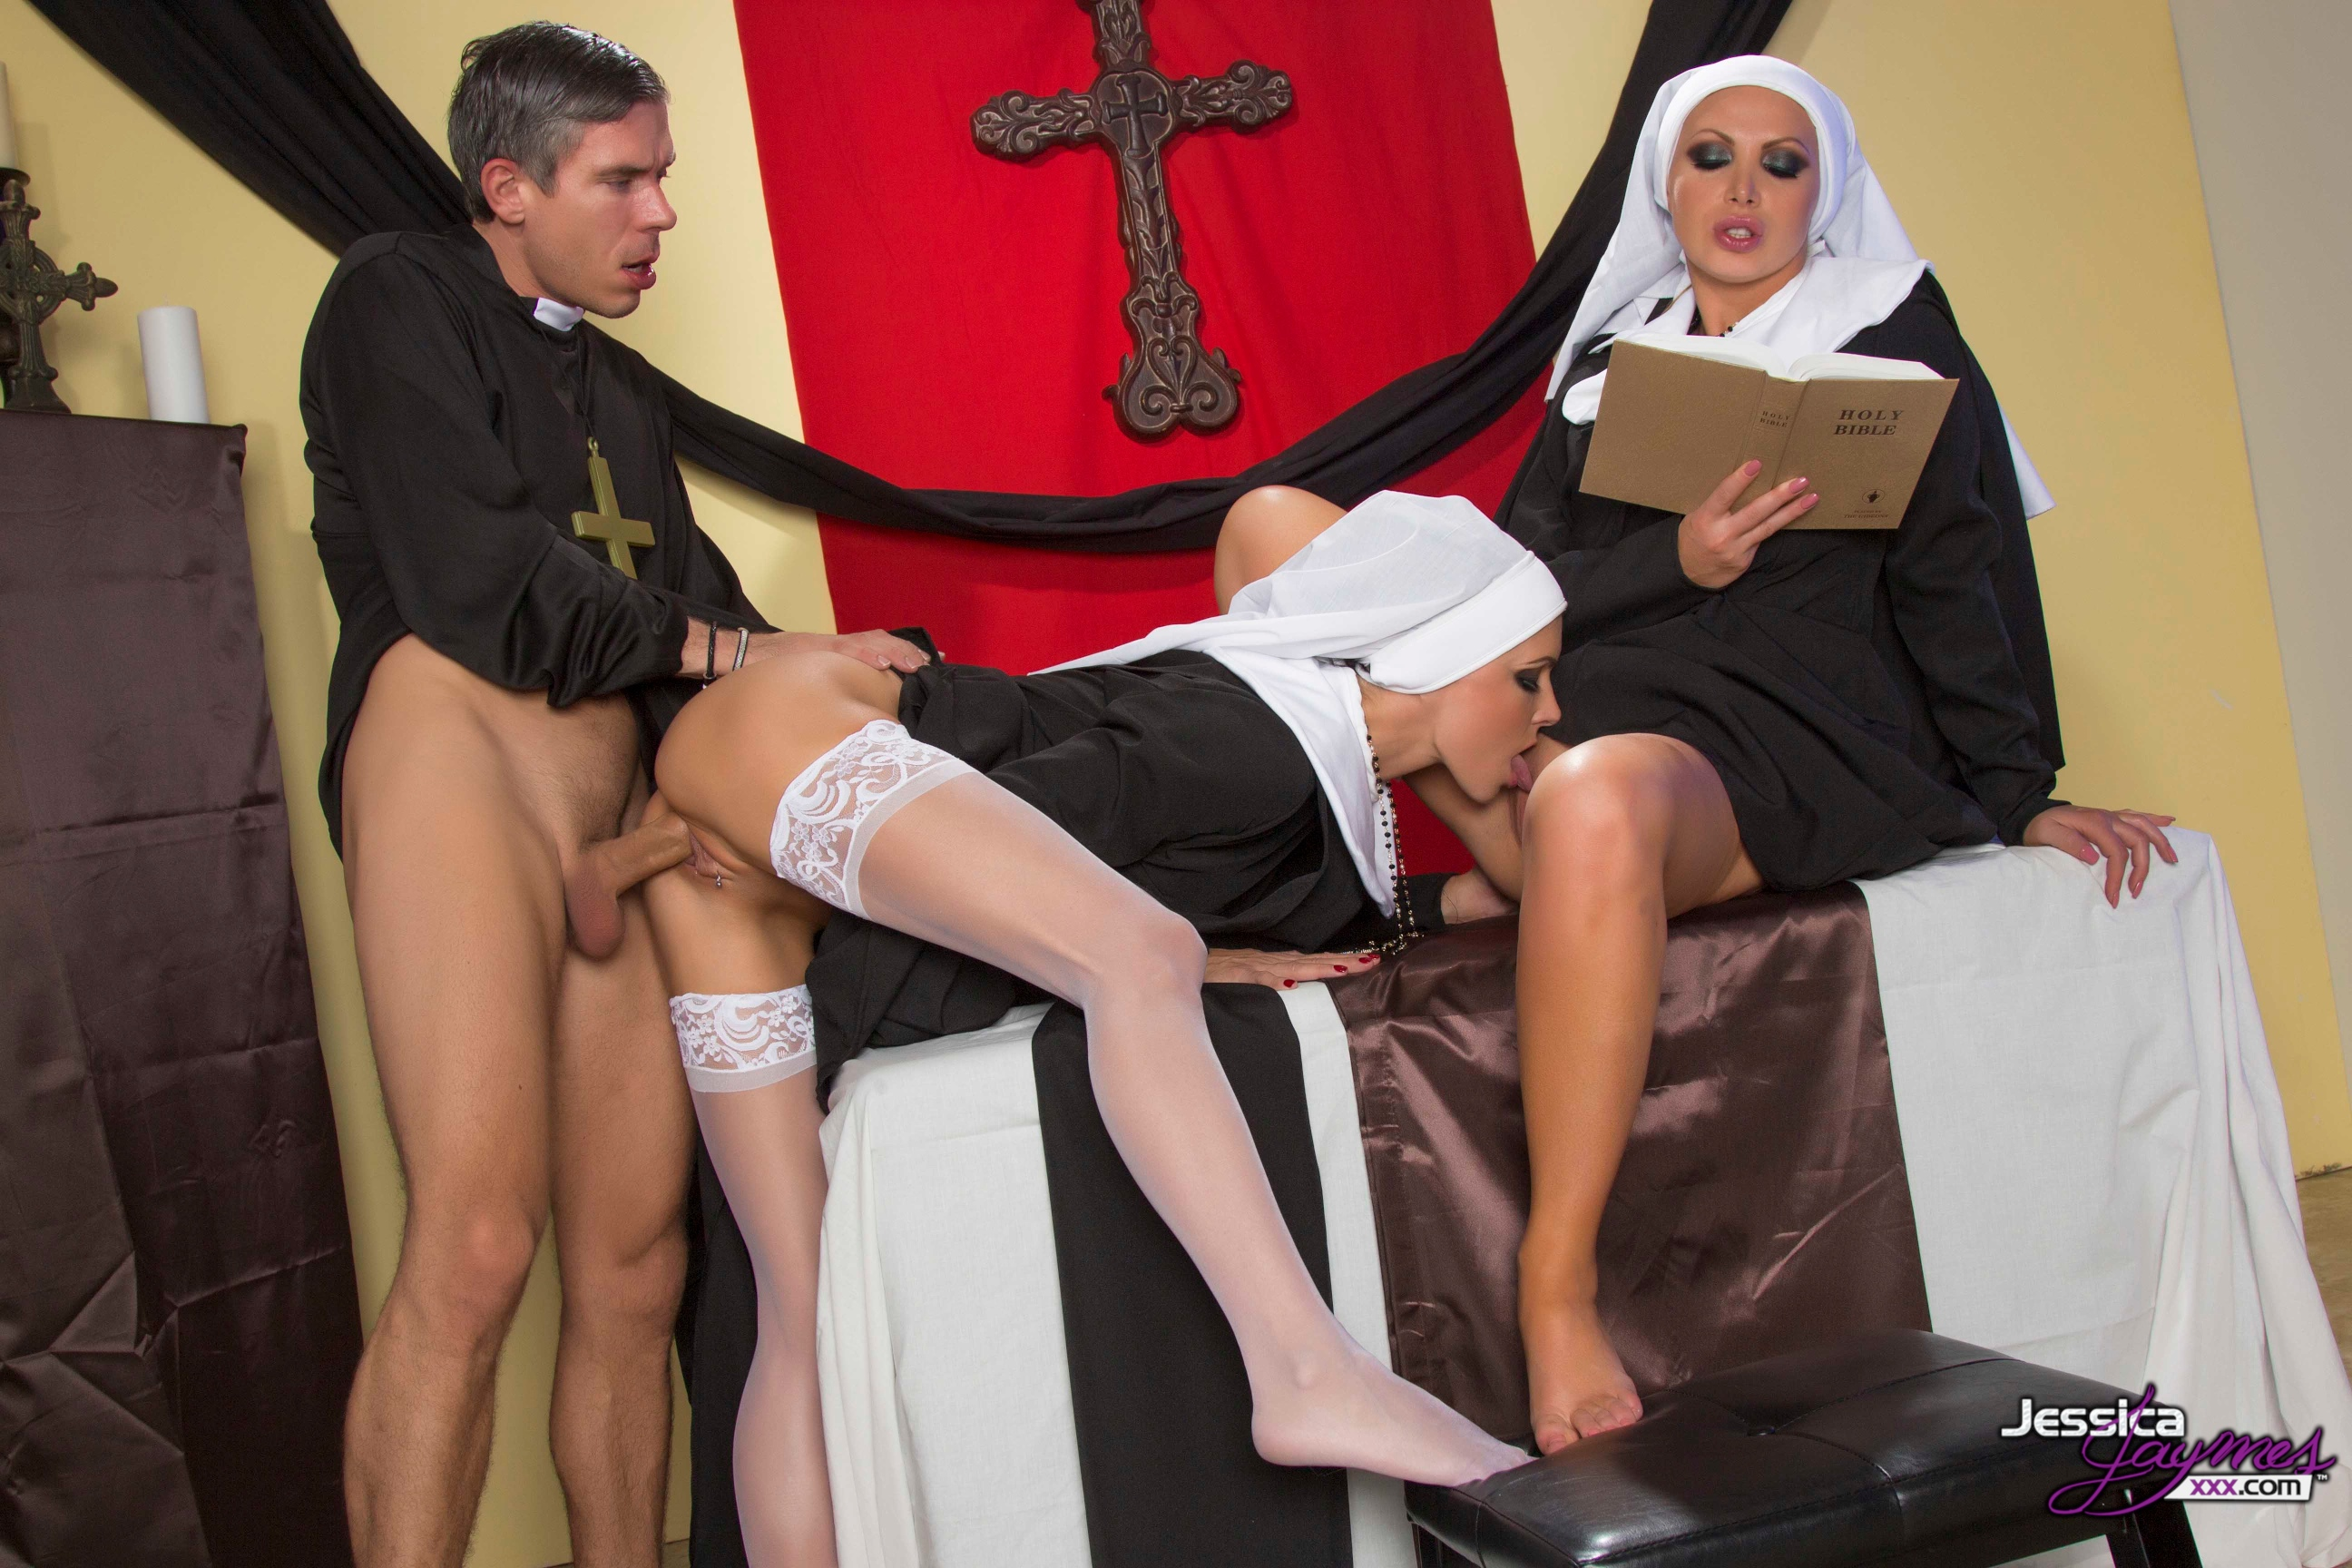 Porn hotest nuns and priest photos nackt pics